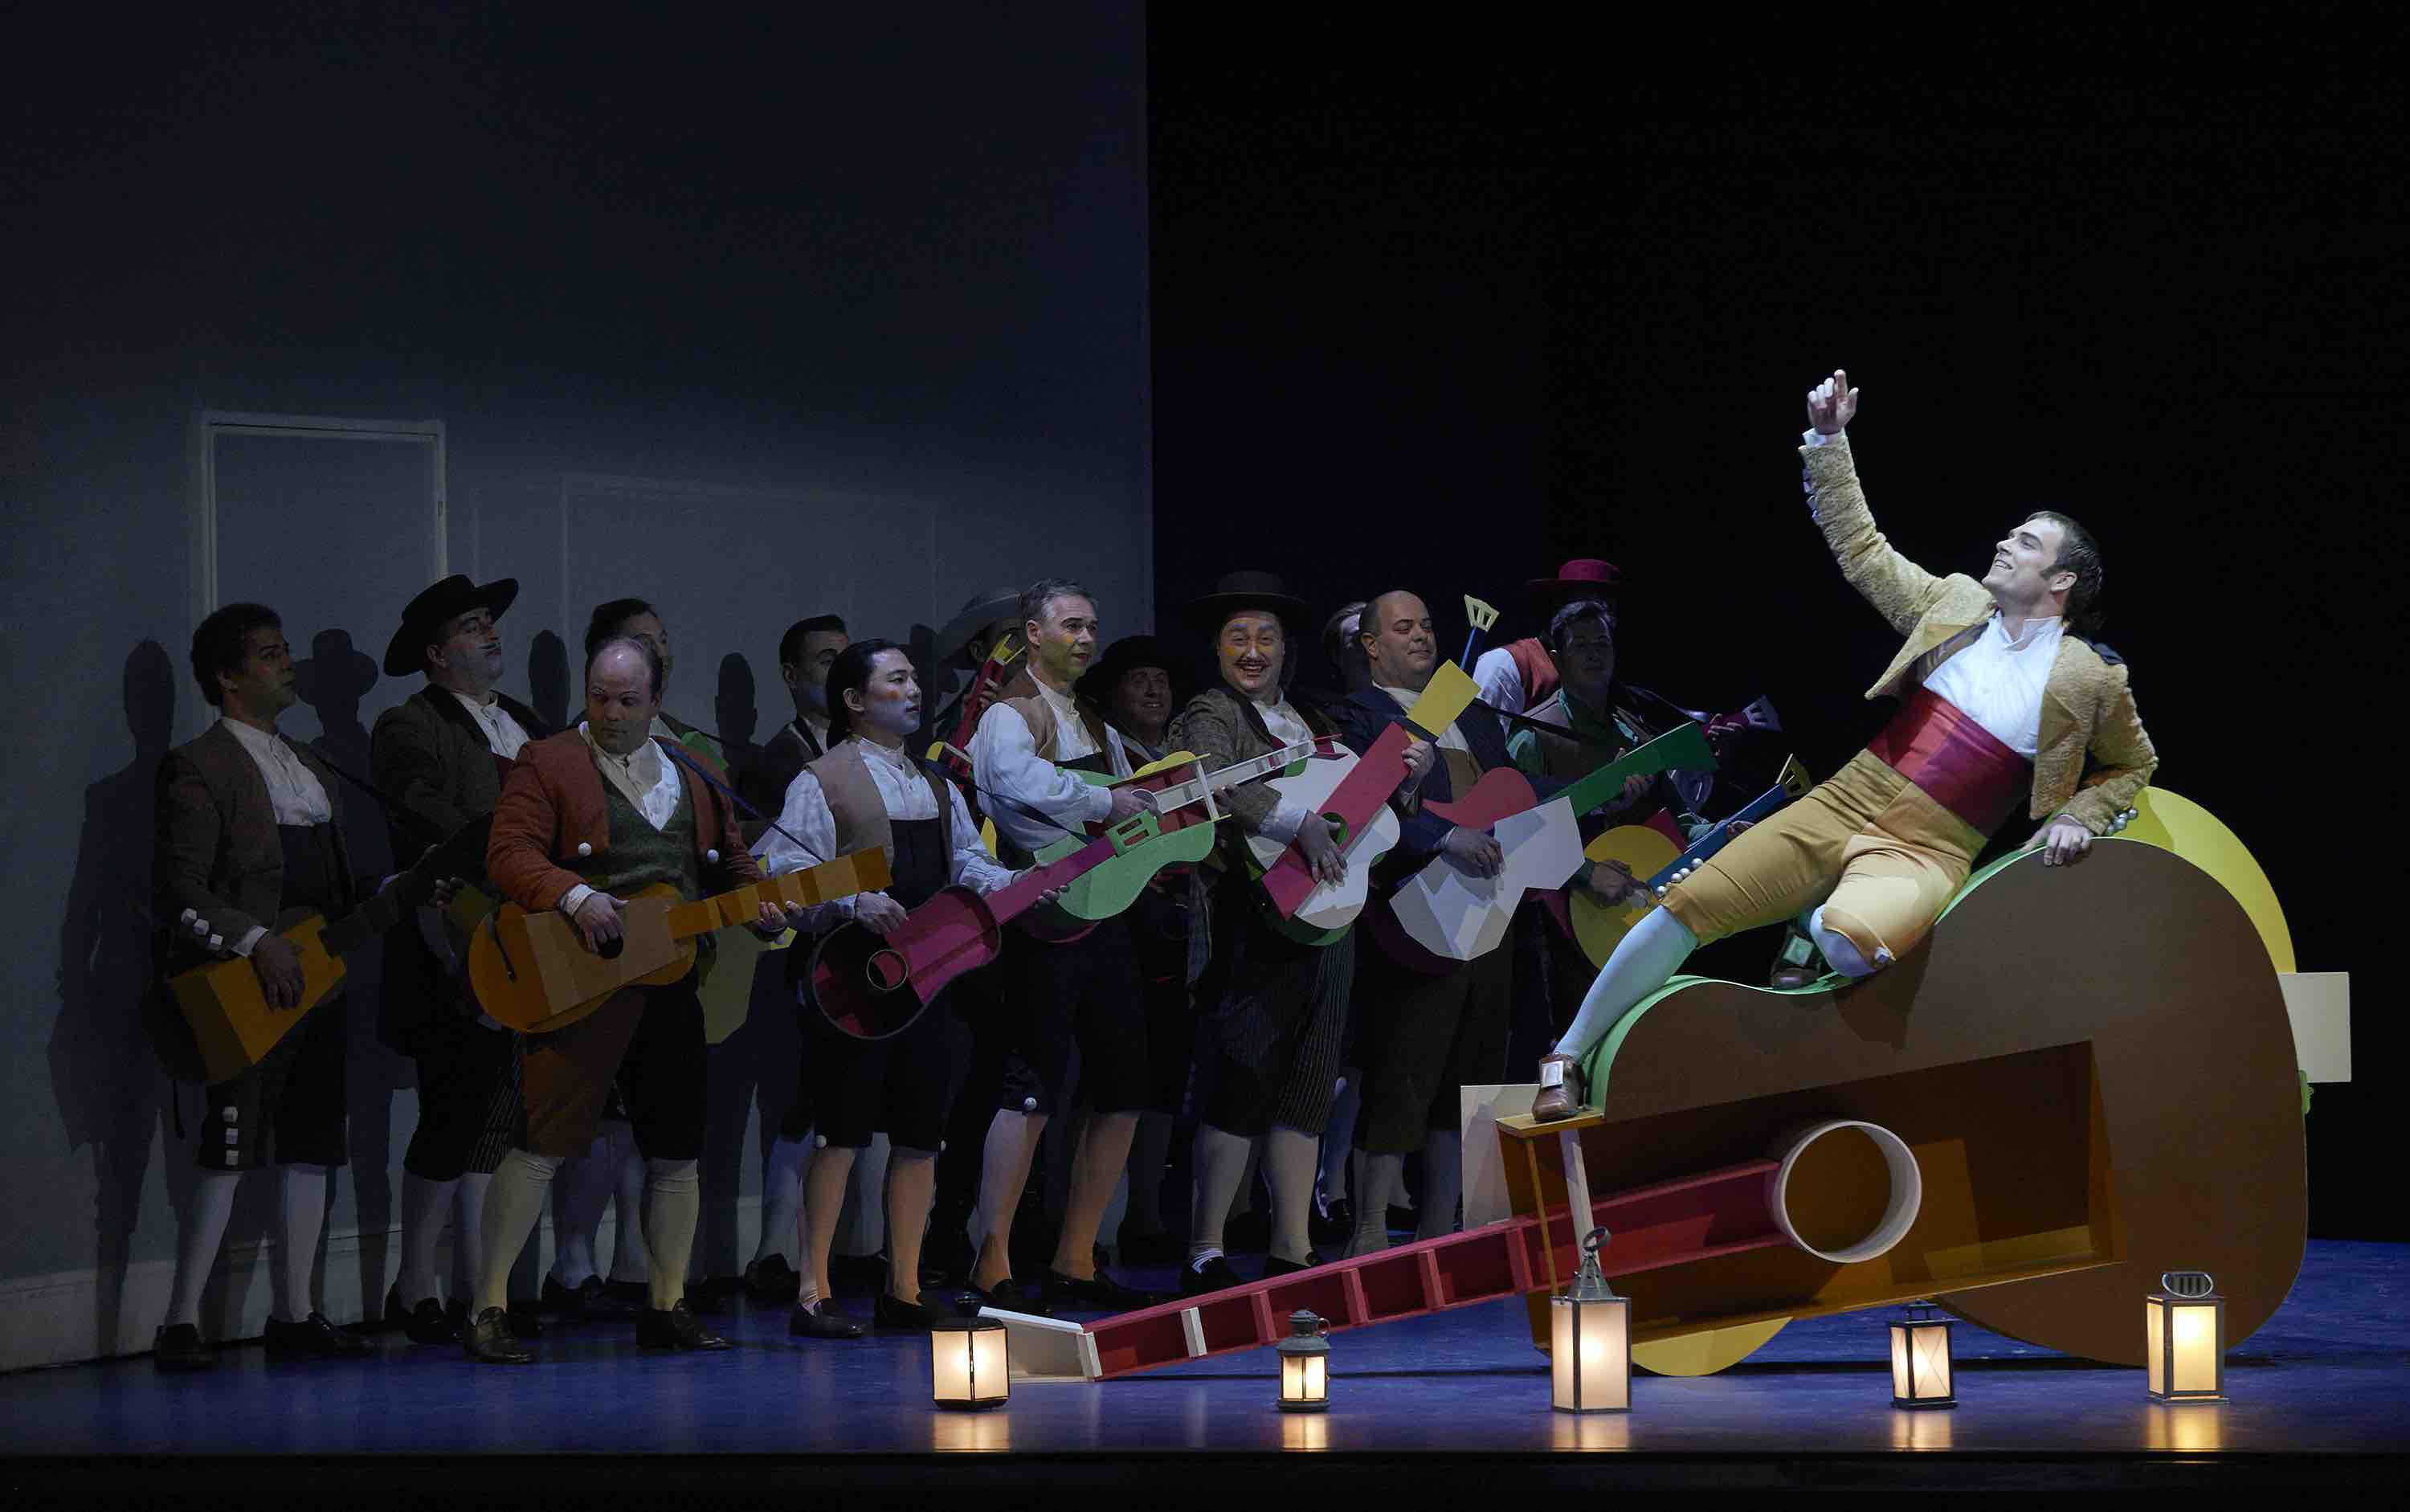 Cast on stage as the Canadian Opera Company 2020 season starts